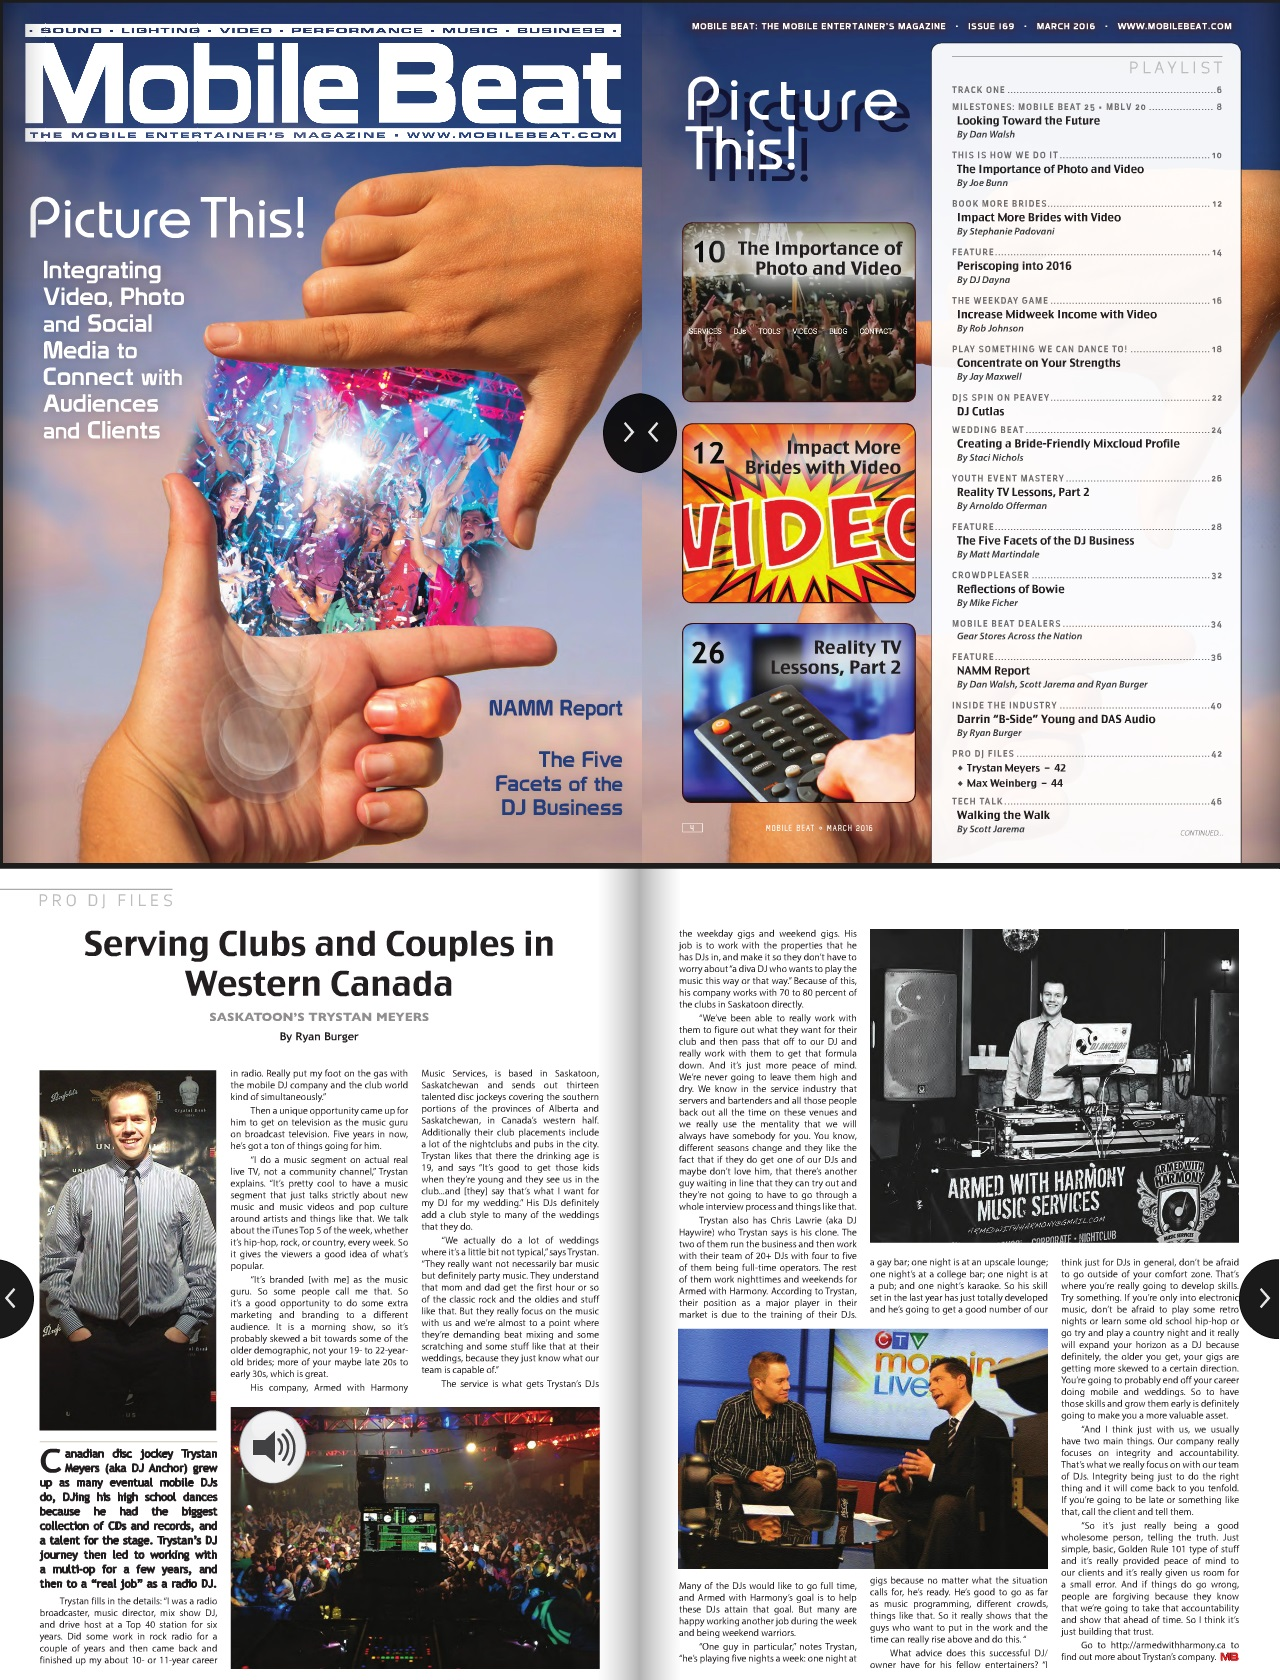 Saskatoon DJ Anchor of Armed With Harmony featured in Mobile Beat Magazine The Worlds Biggest Mobile & Club DJ Mag - Image 1